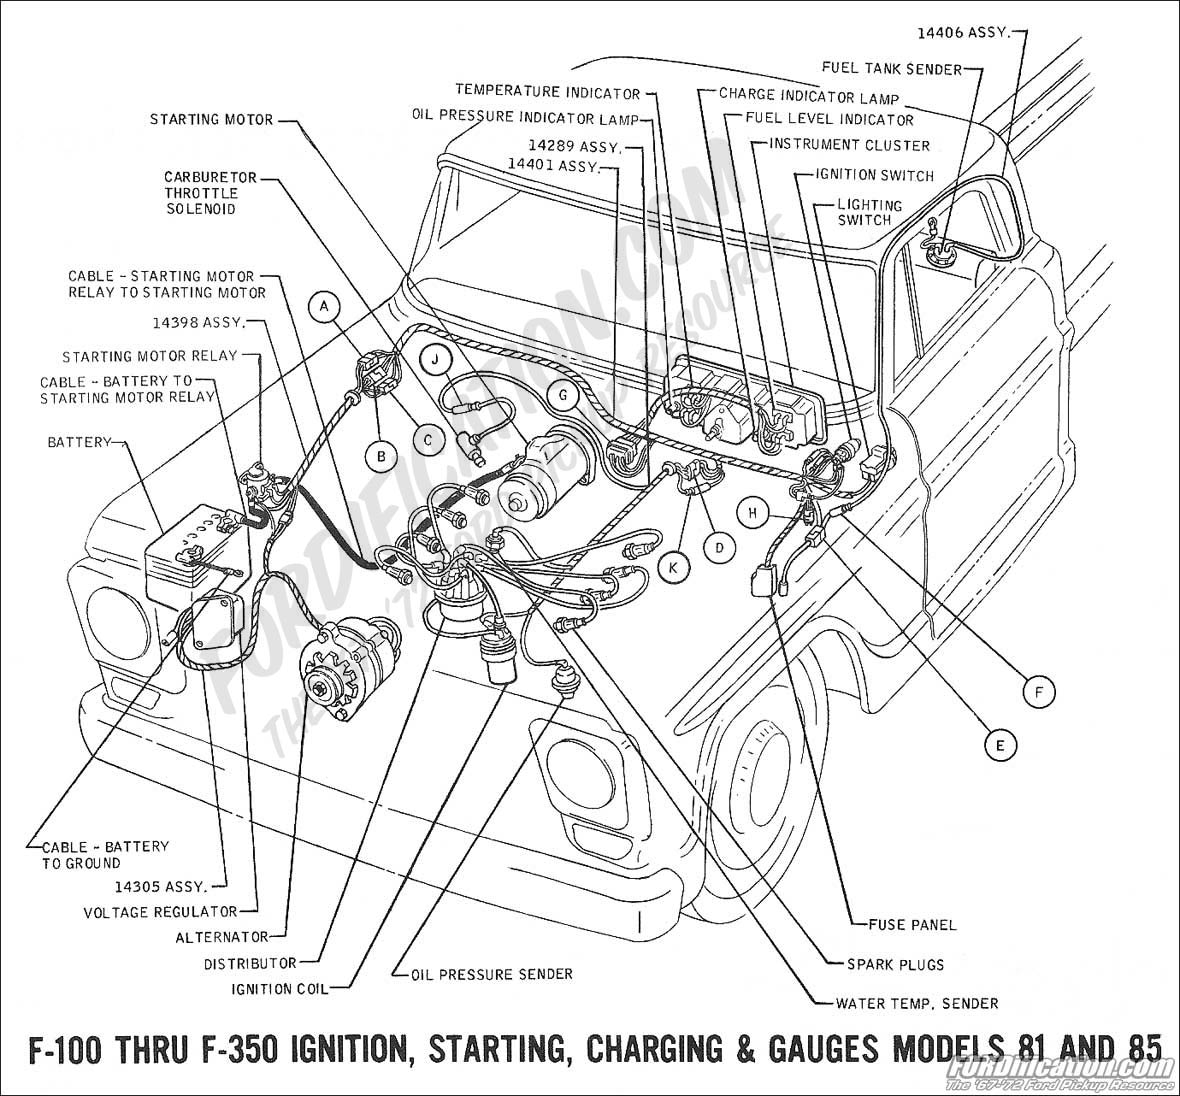 1985 Ford F 250 Voltage Regulator Wiring Diagram - Schematic Diagrams